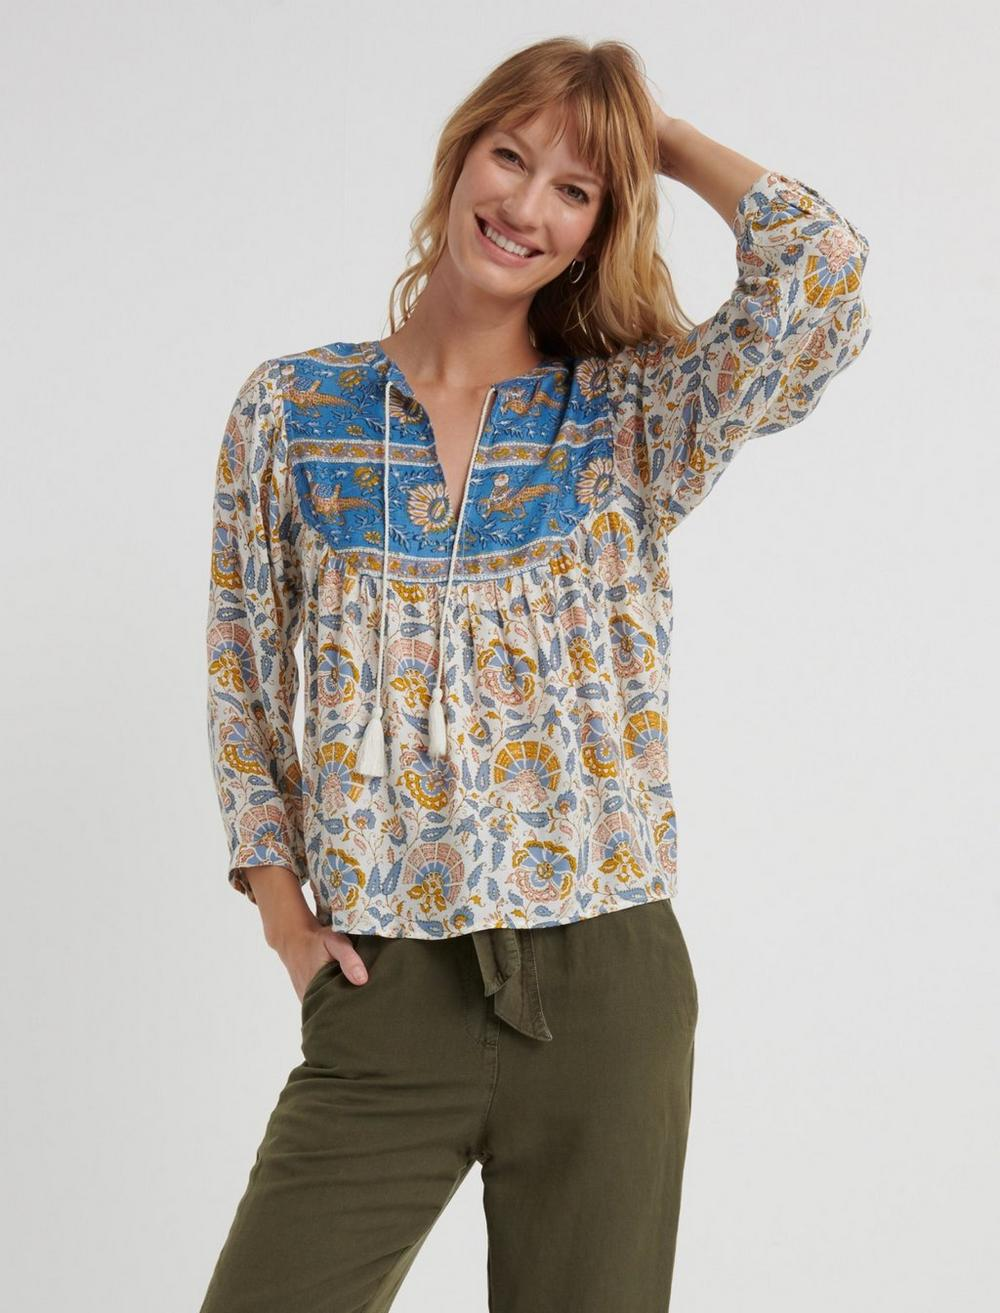 Women's 70s Shirts, Blouses, Hippie Tops Lucky Brand Printed Evelyn Peasant Top Size XS in Blue Multi $26.00 AT vintagedancer.com